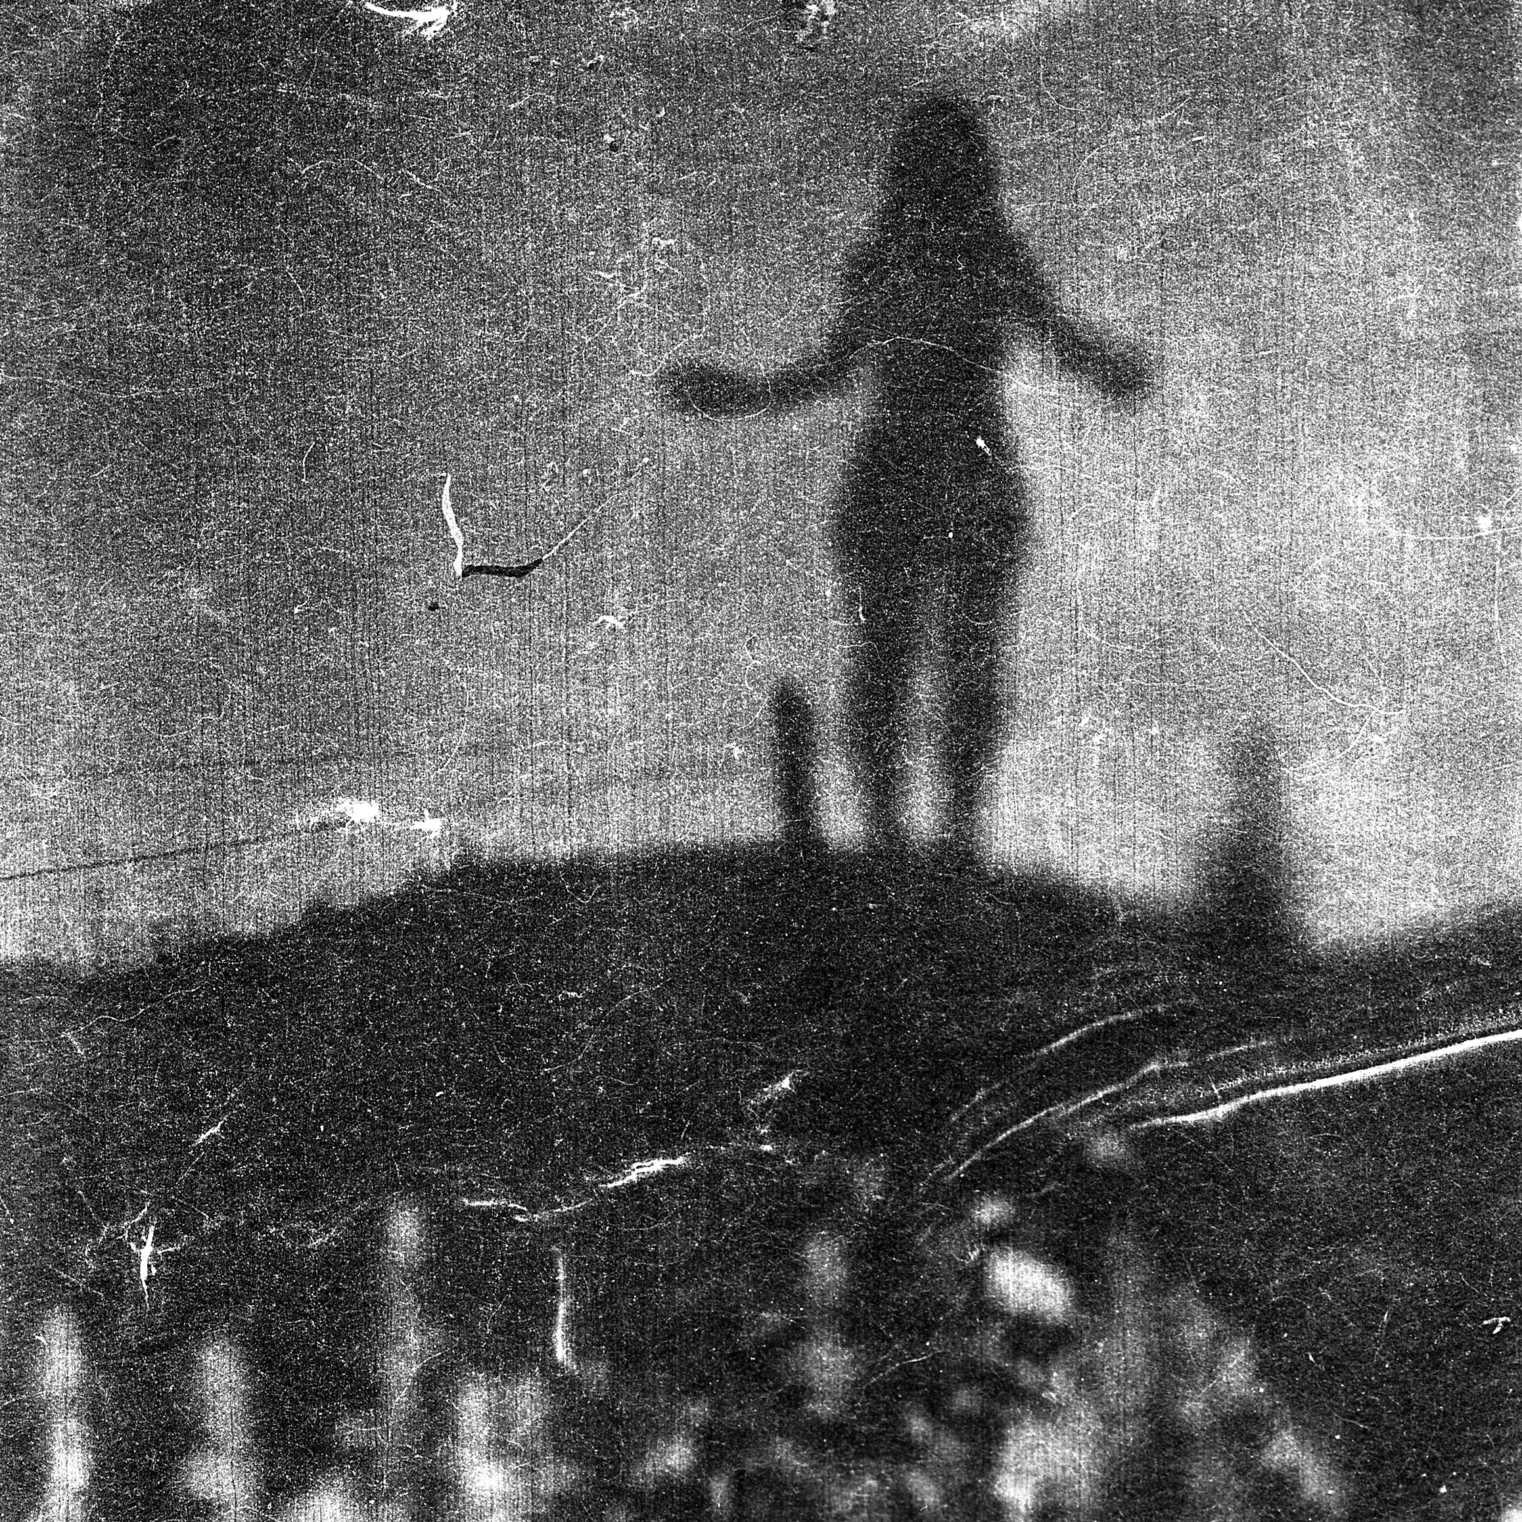 A grainy and hazy black and white photography showing the outline of a woman standing on a mound, the foreground is covered in grass and bushes. o